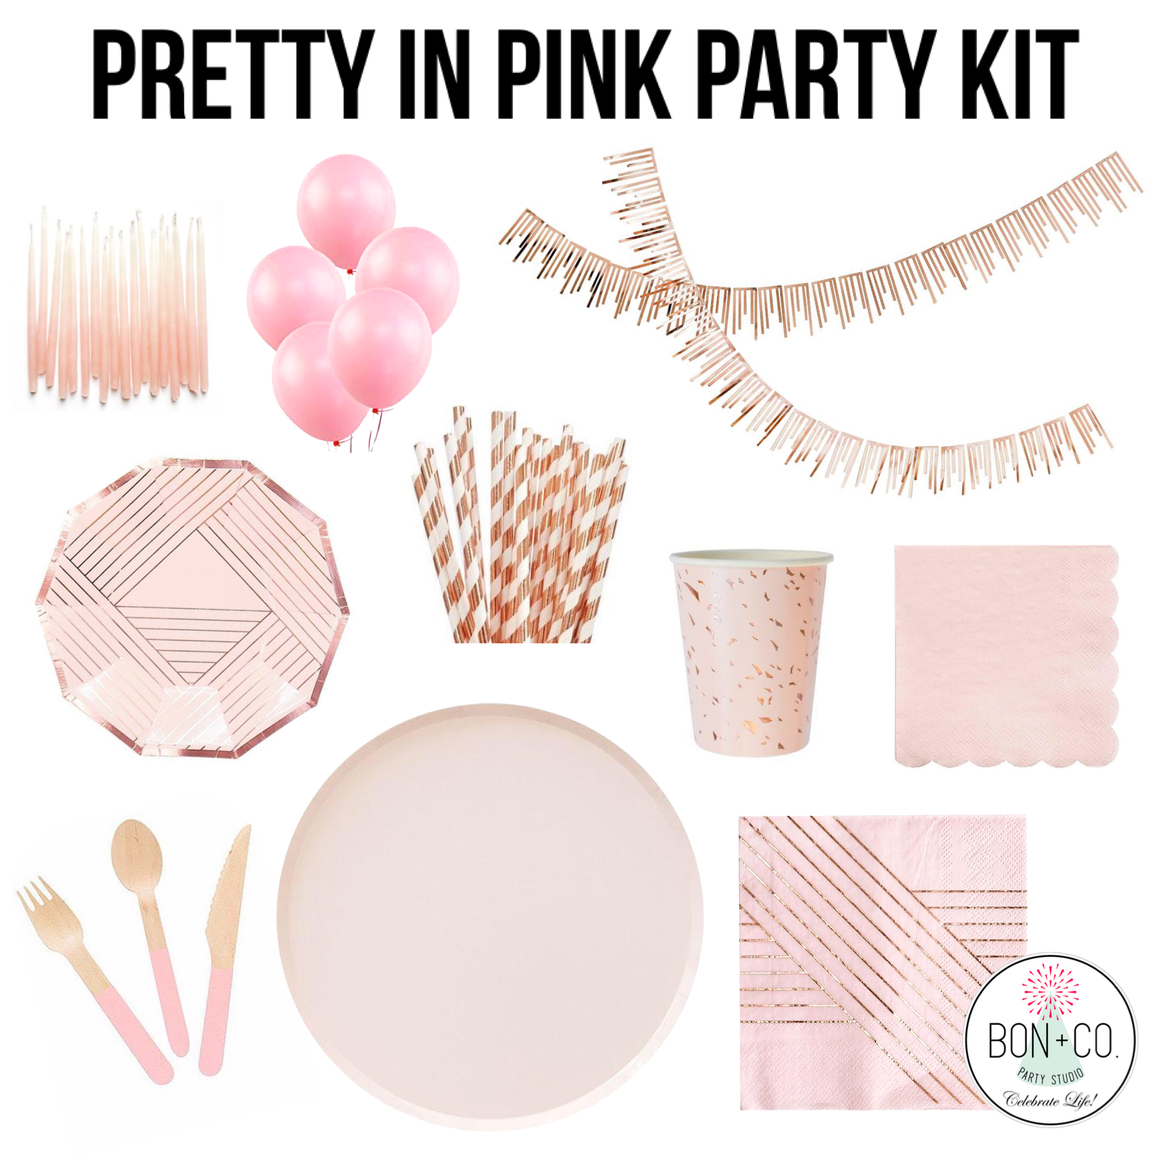 PARTY KIT - PRETTY IN PINK